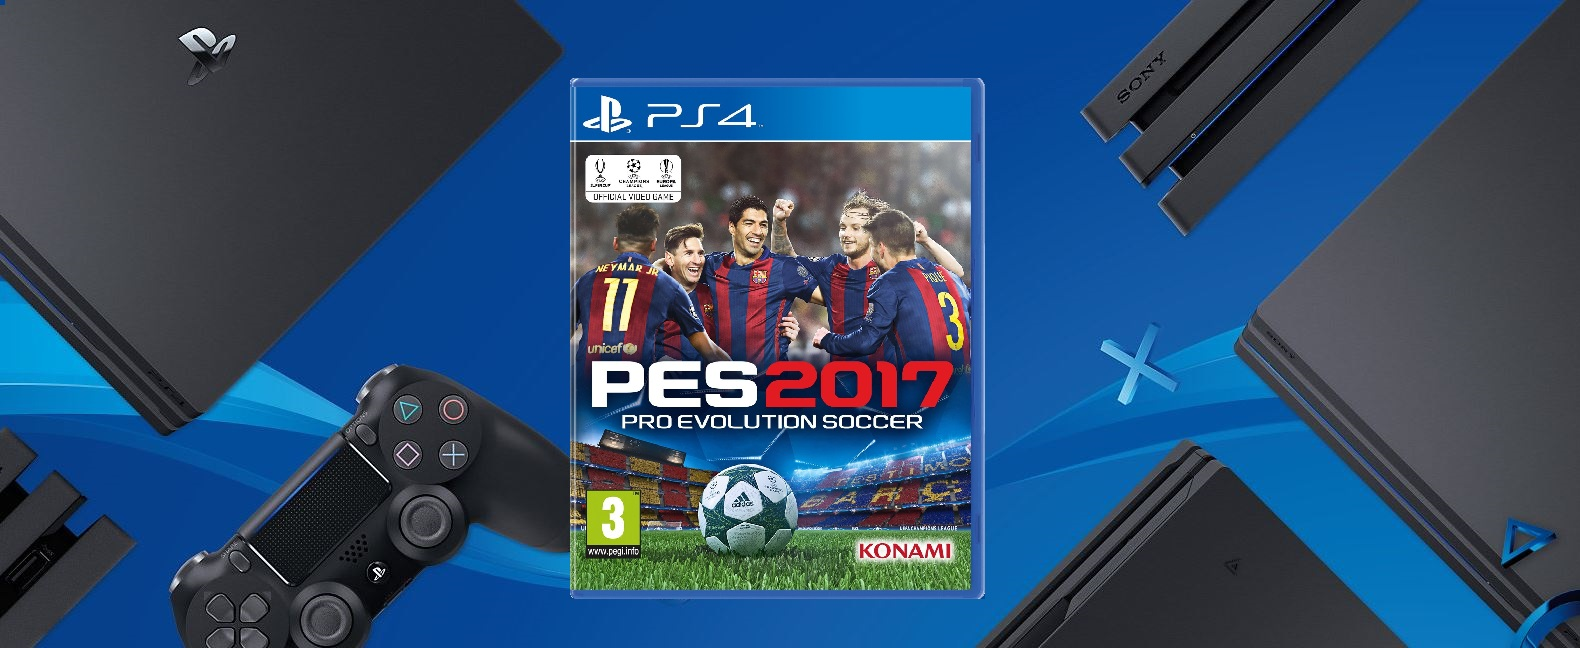 Pes 2017 To Support The Ps4 Pro And 4k Pesmyclub Sony Evolution Soccer